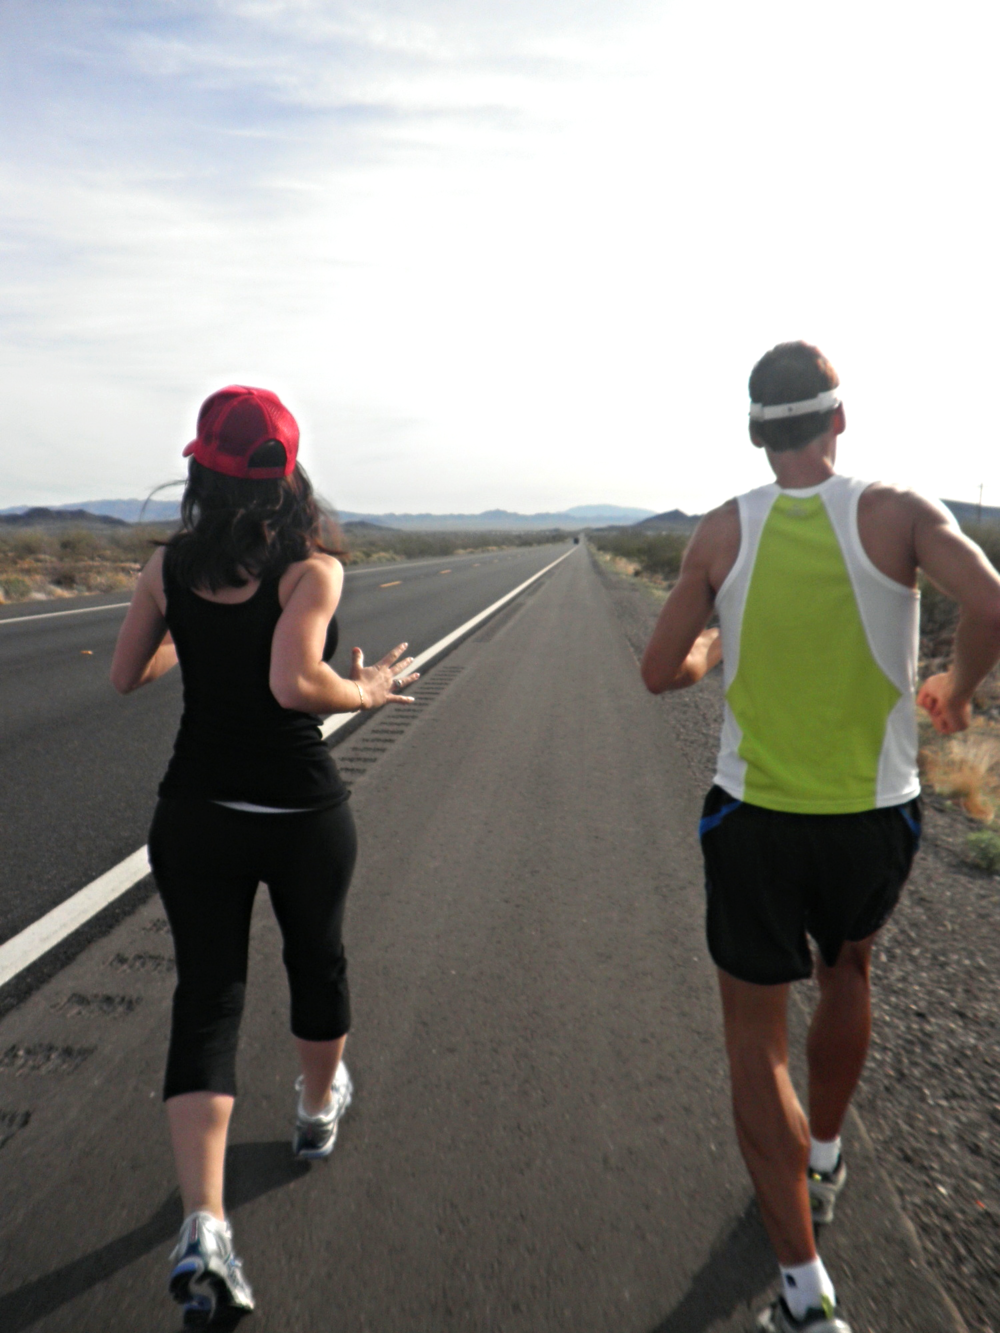 Dean and I running in the California desert, March, 2011.